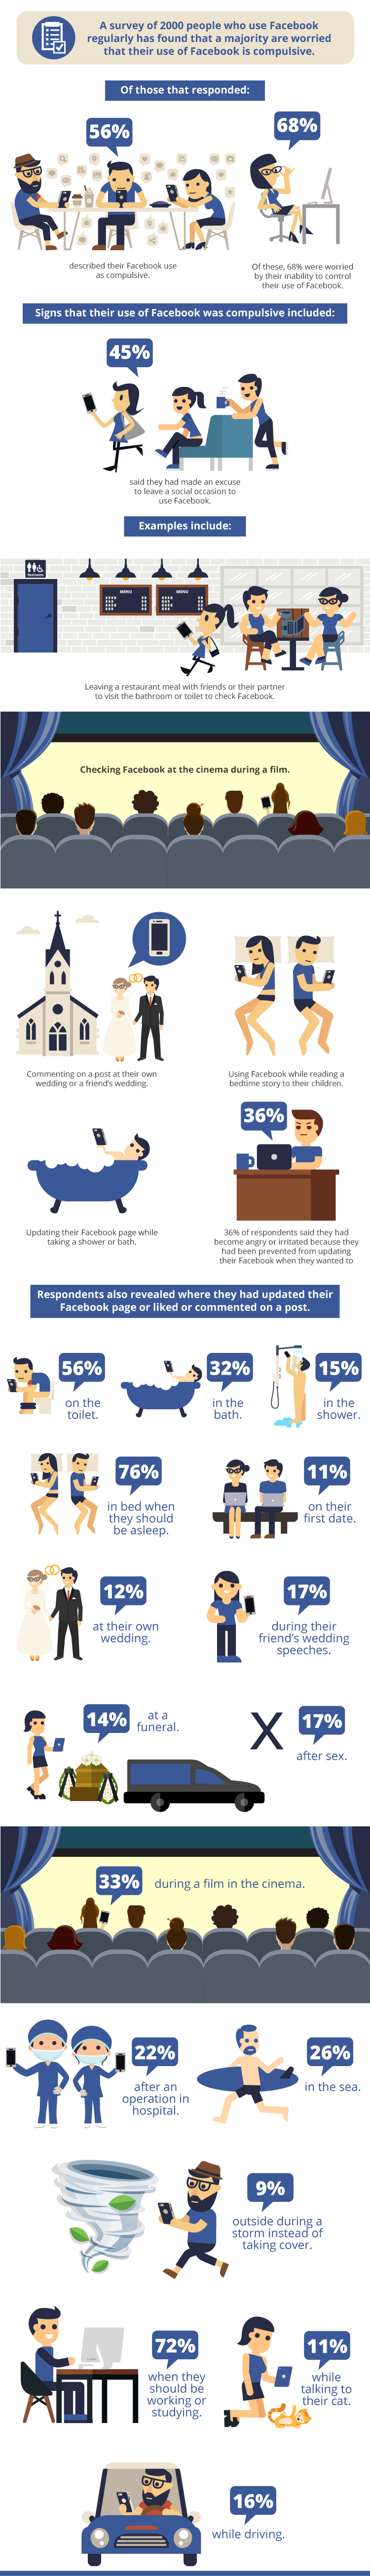 social-media-addiction-infographic